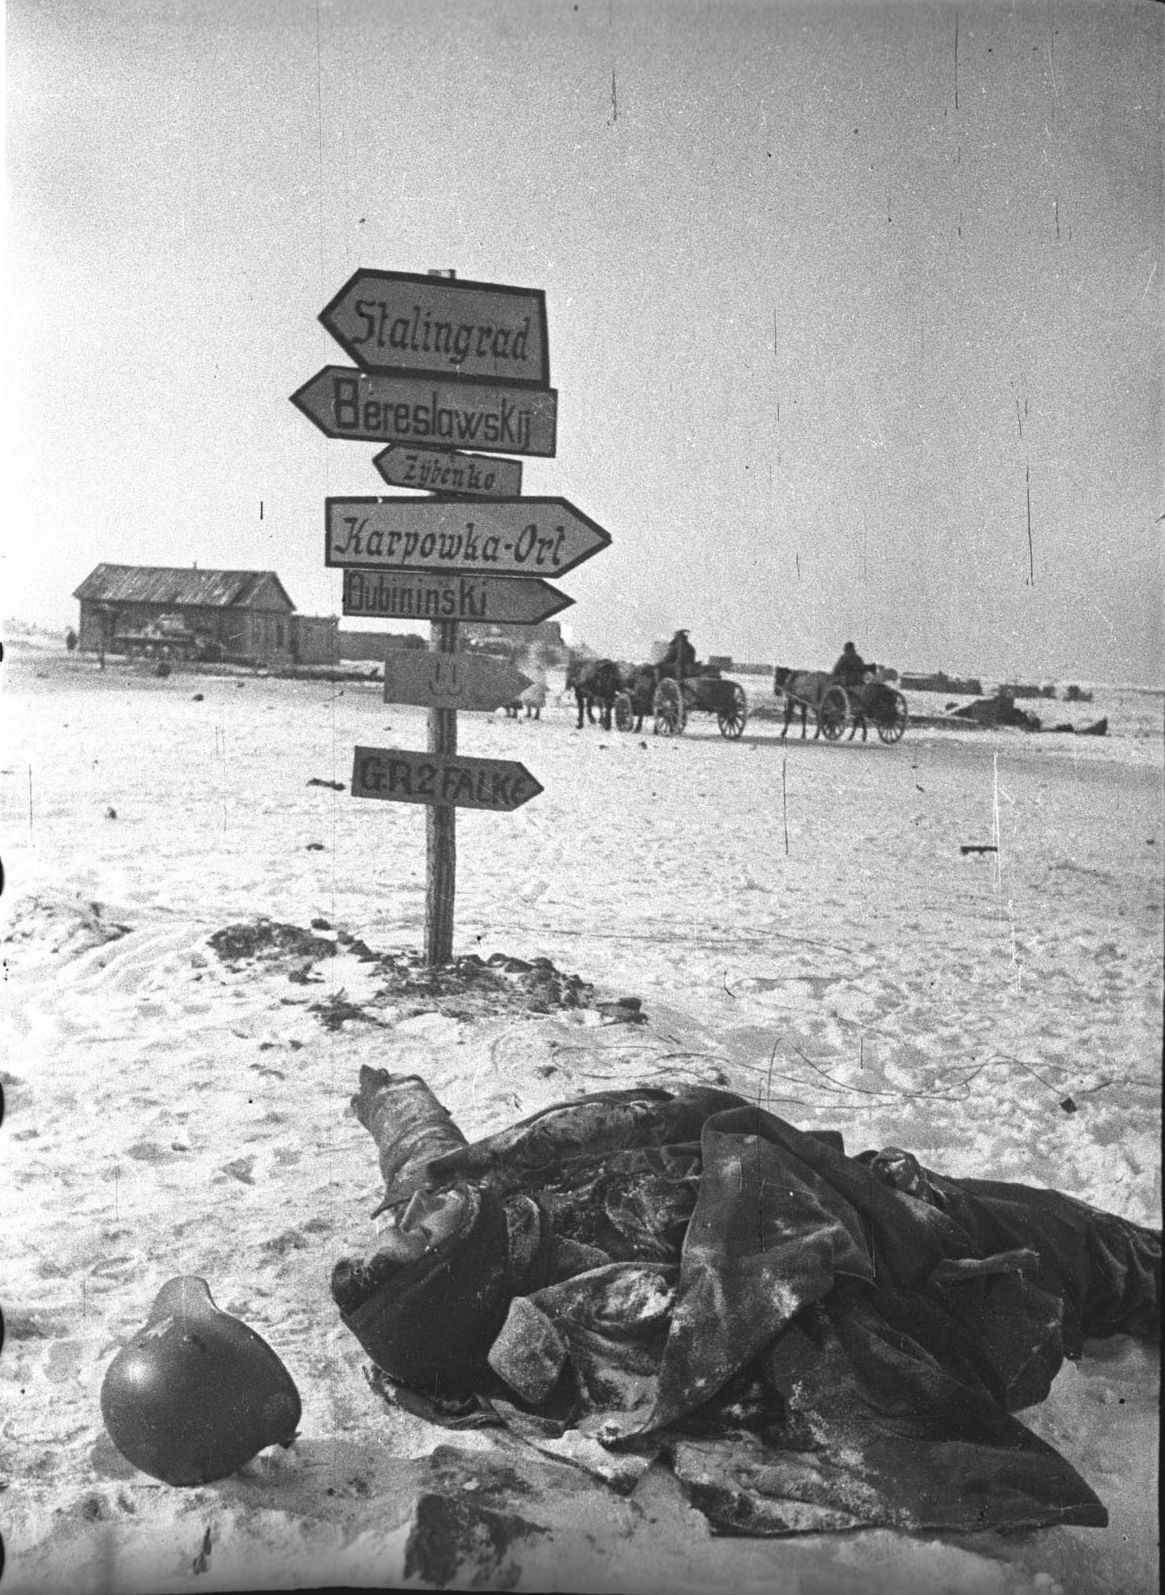 This German won't need the road signs erected in the middle of nowhere by the ever-present German army logistics. Vicinity of Stalingrad, late 1942.